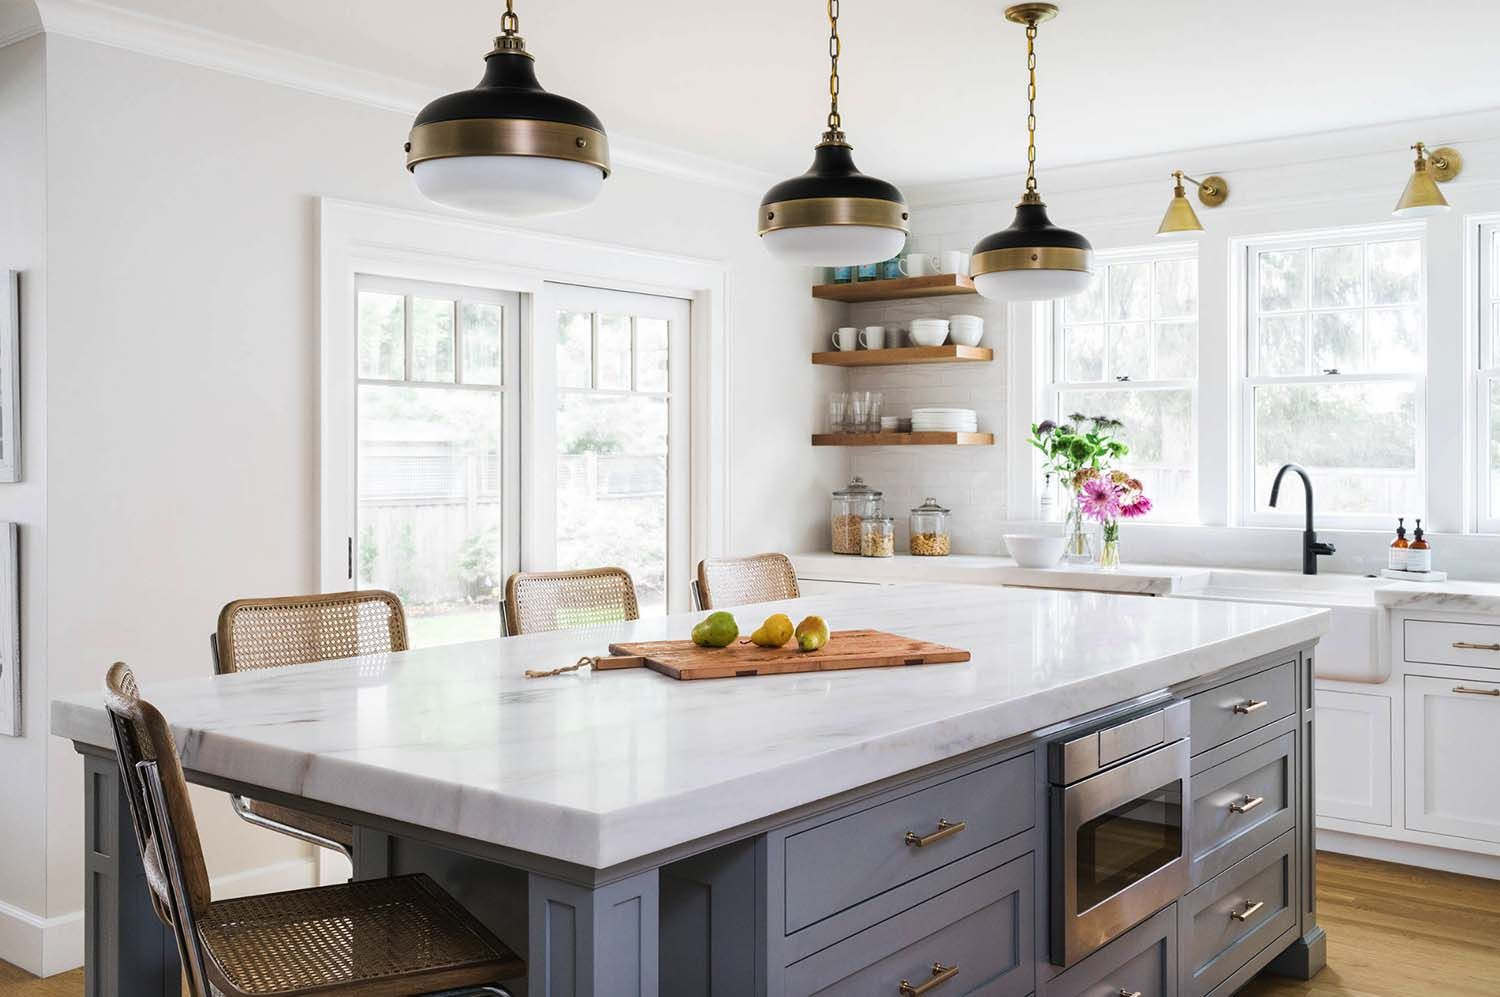 Beautifully Renovated Dutch Colonial Style Home Nestled In New England Kitchen Cabinets Decor Kitchen Cabinet Design Kitchen Design